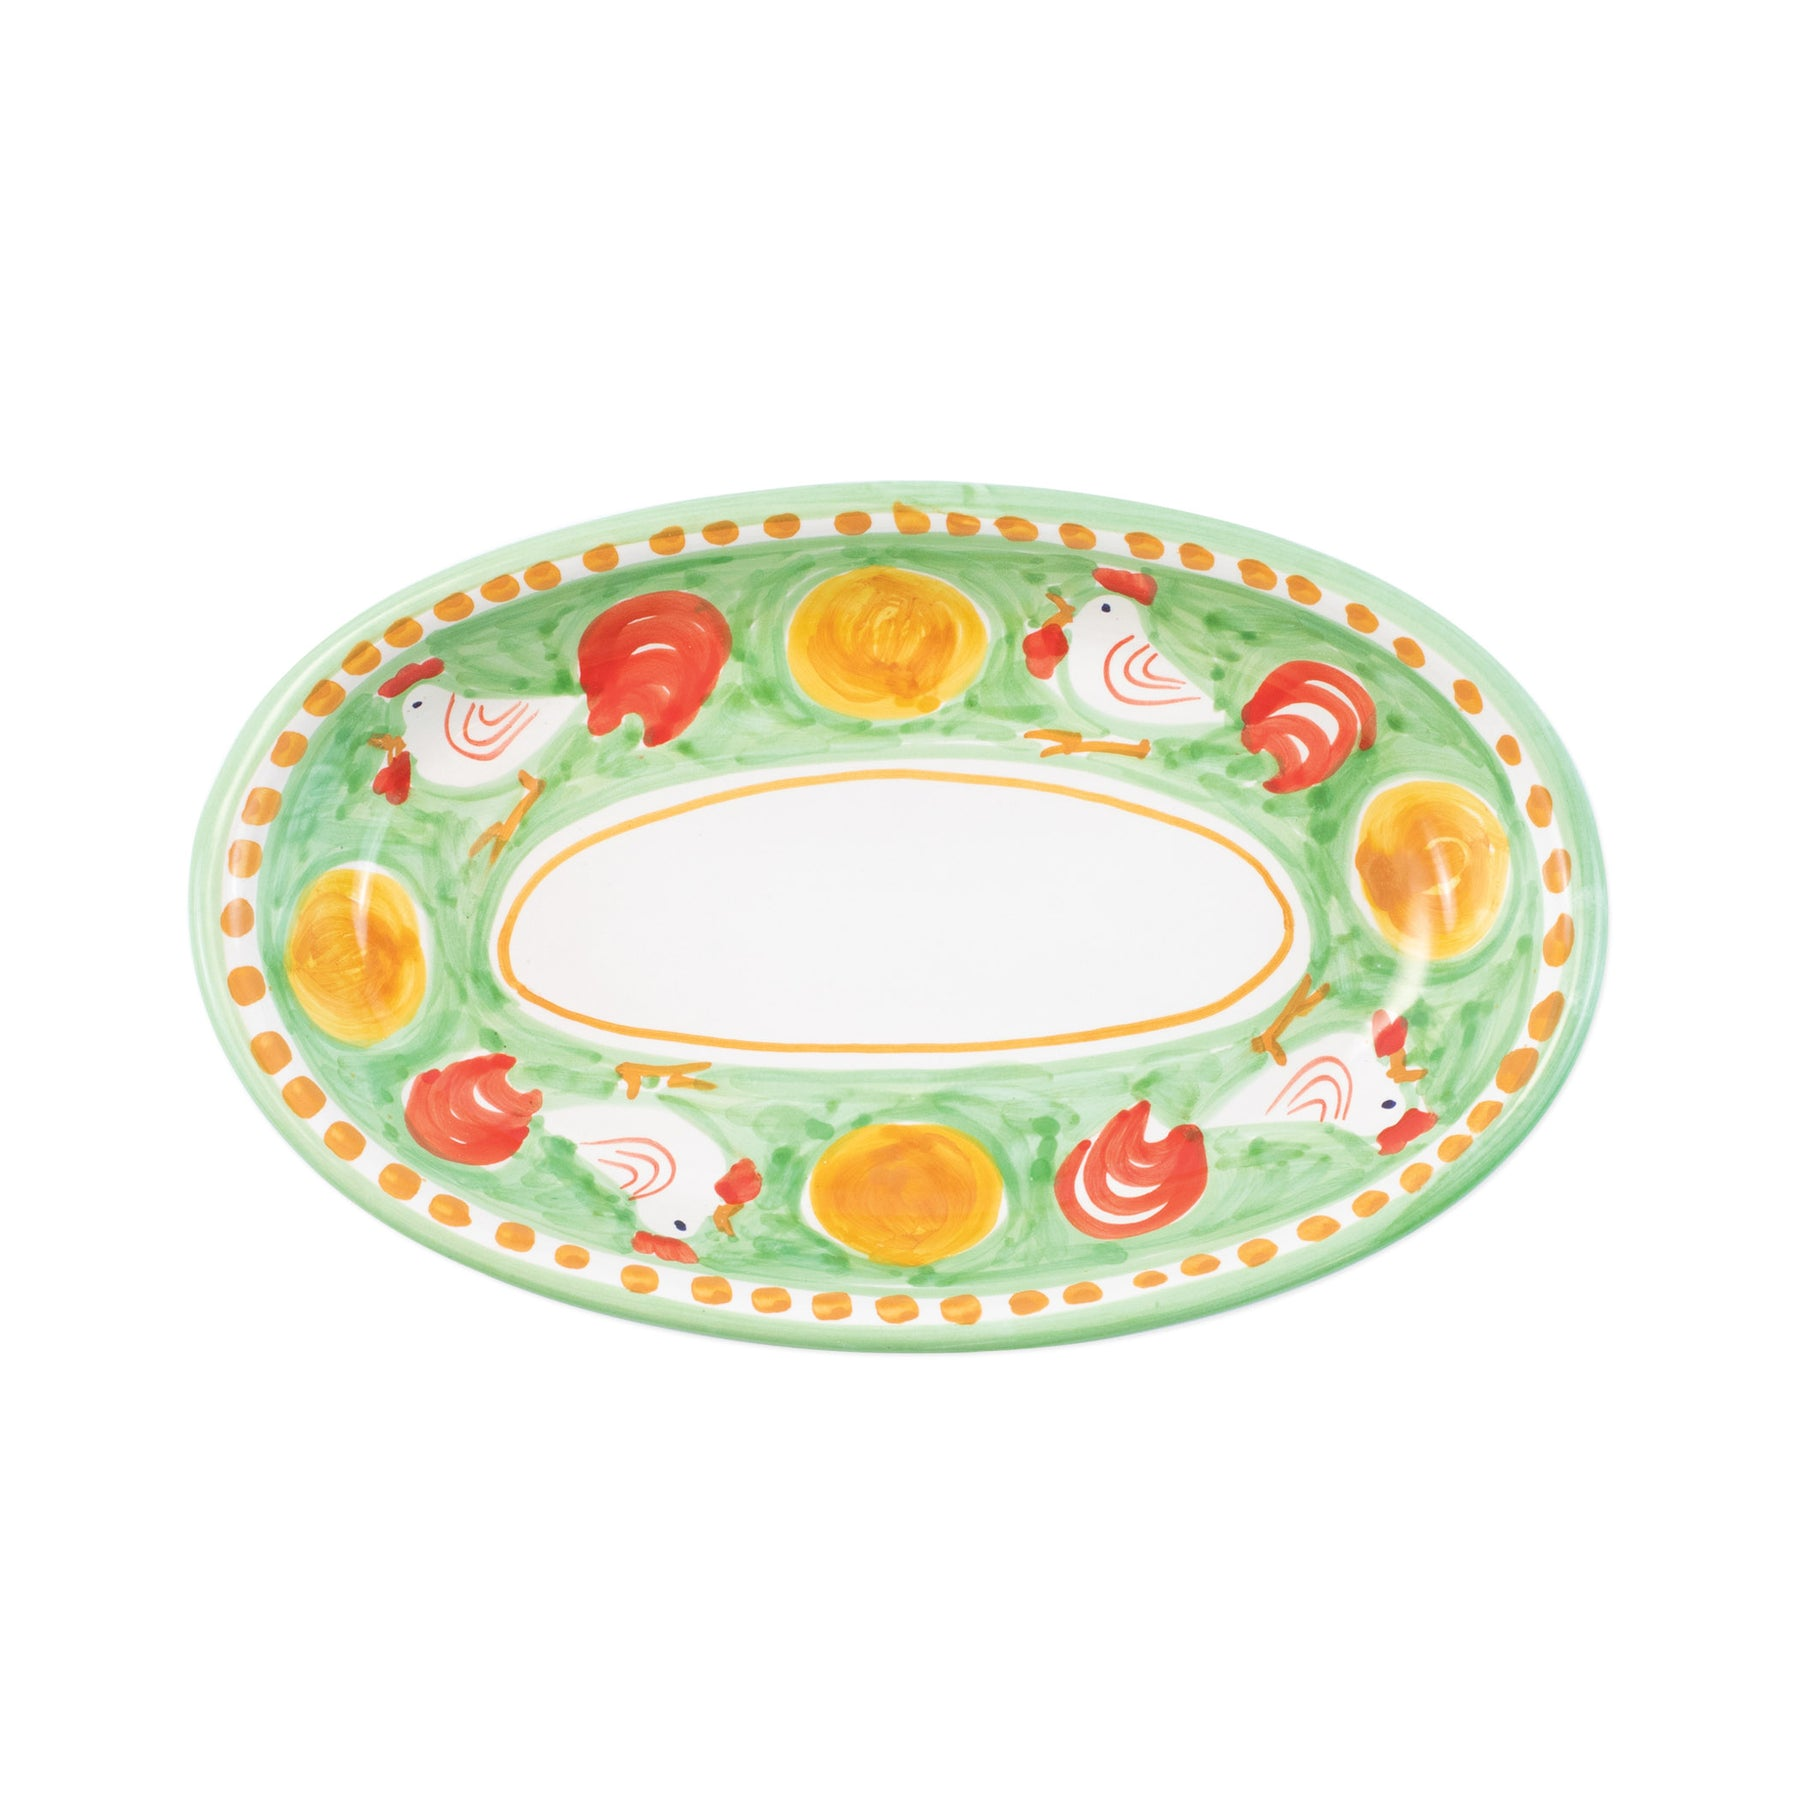 Campagna Gallina Small Oval Tray Vietri